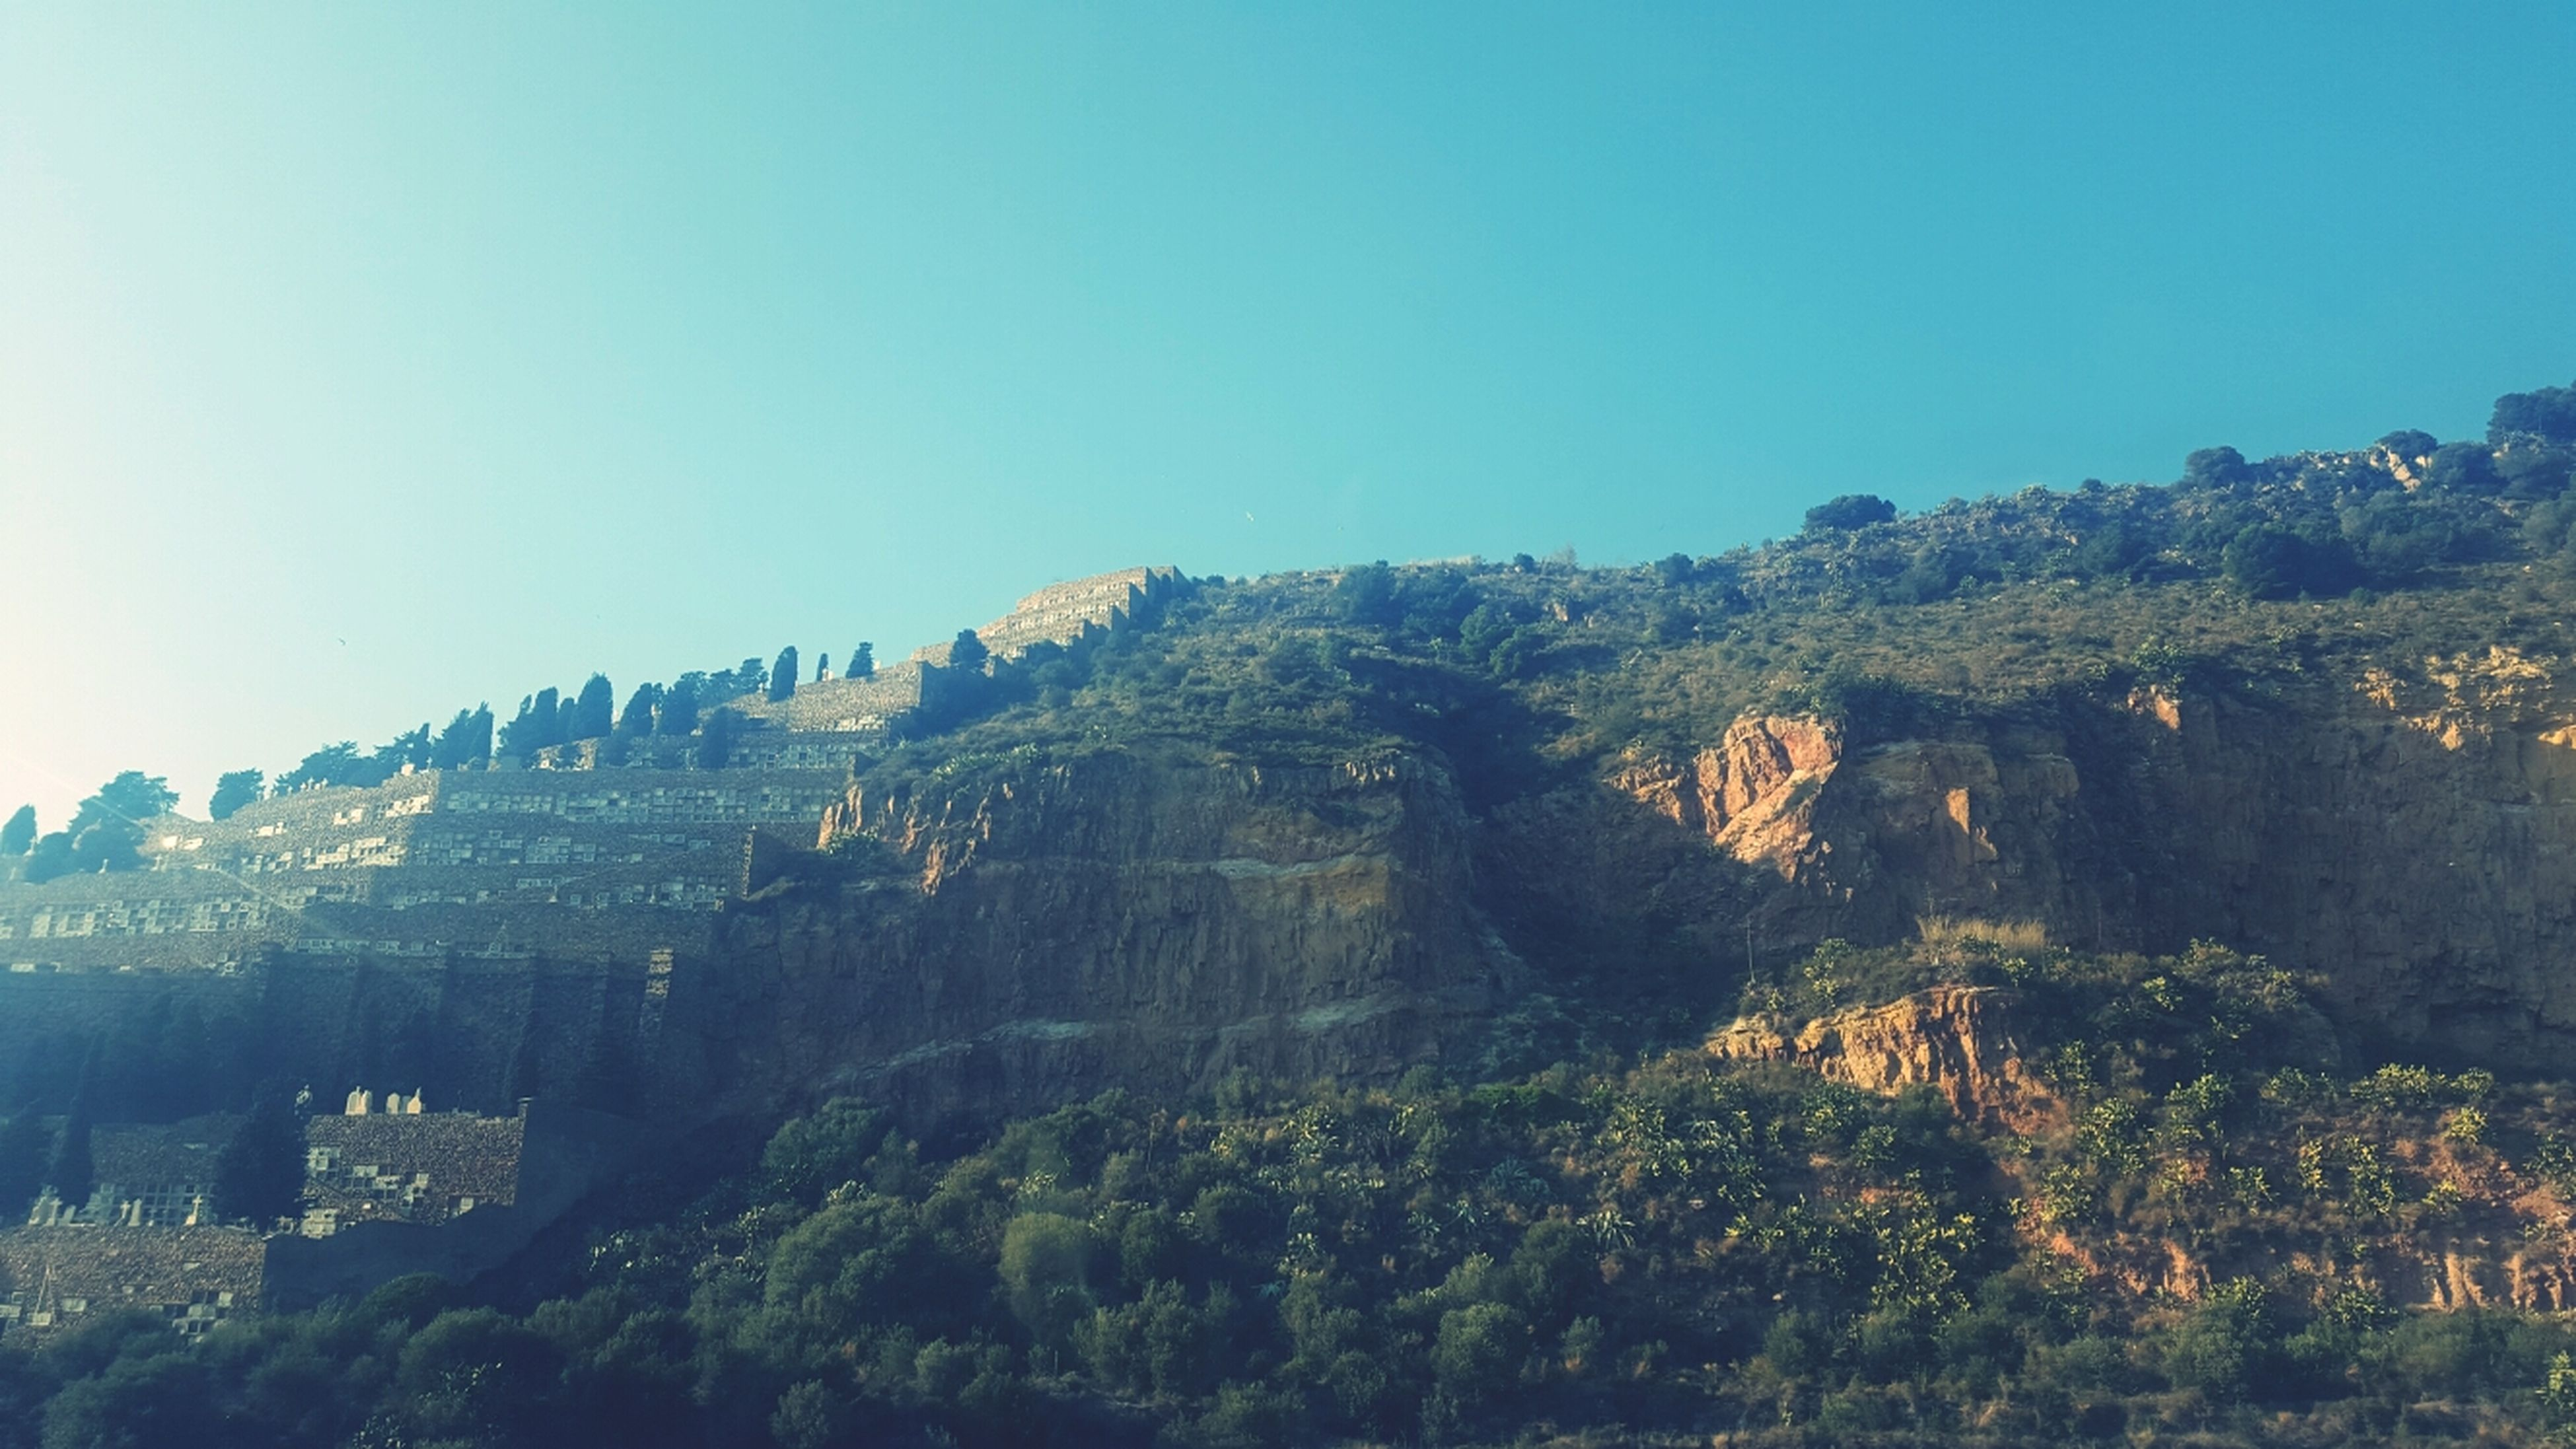 clear sky, tree, copy space, mountain, tranquility, scenics, tranquil scene, beauty in nature, nature, blue, landscape, growth, non-urban scene, low angle view, idyllic, sunlight, outdoors, no people, day, sky